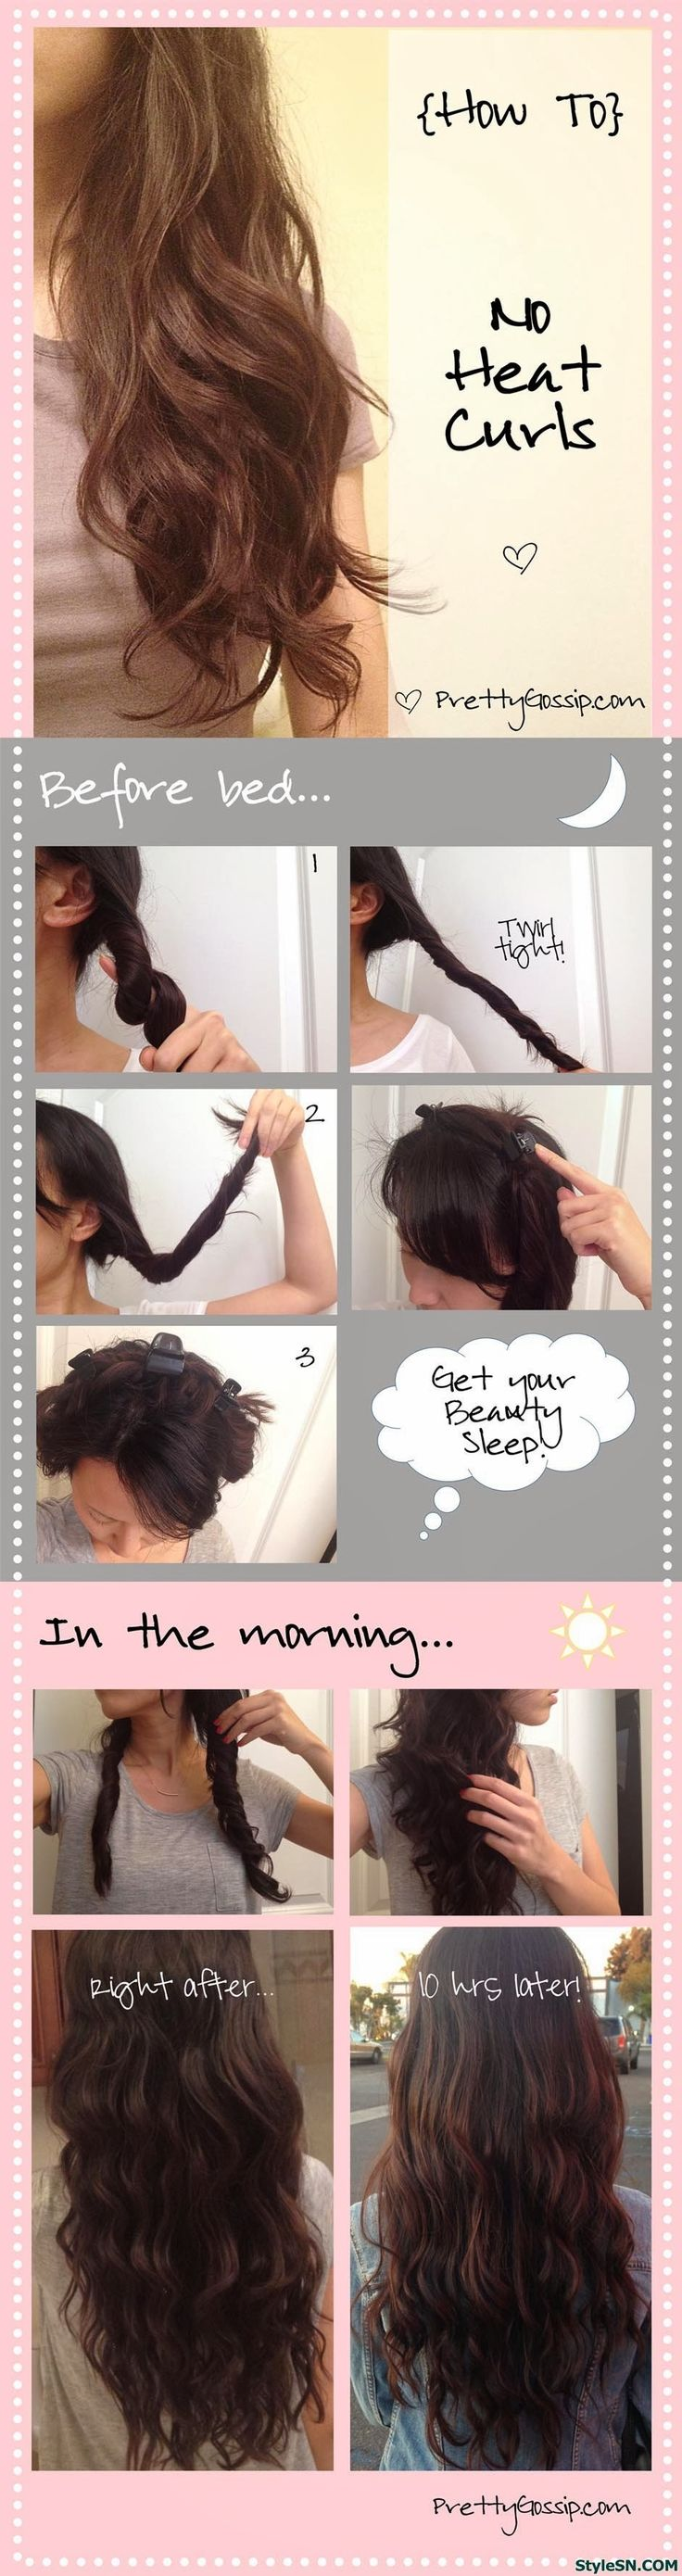 img9099a068e117859d6c0df13180c6a1b1 Ways to make your hair curly without heat